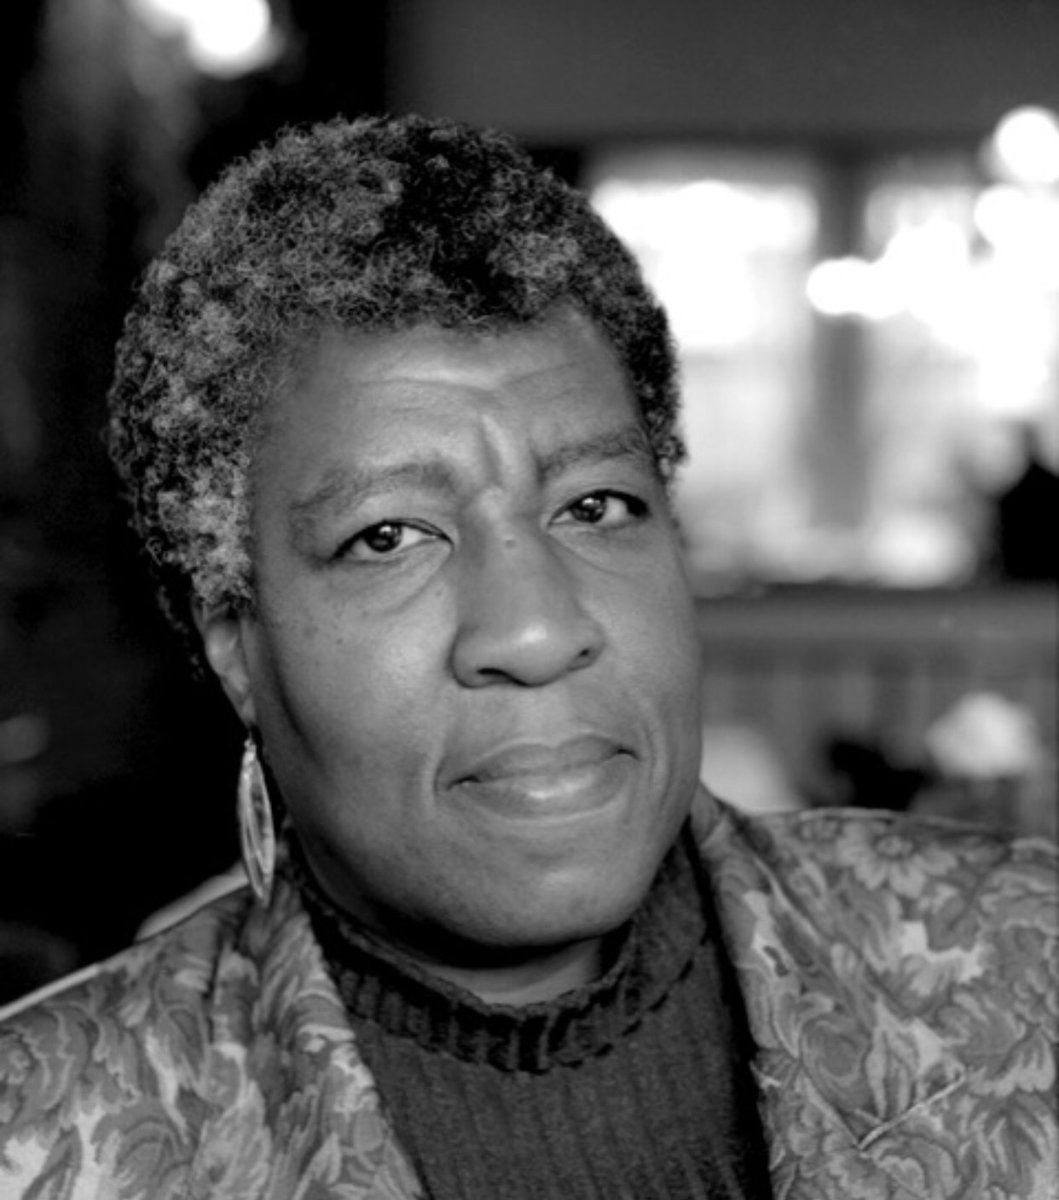 """One of the most valuable traits is persistence."" – @OctaviaEButler   My team informally named my touchdown site ""Octavia E. Butler Landing"" in honor of the late author. Butler's protagonists embody determination and inventiveness.    📸: Ching-Ming Cheung"